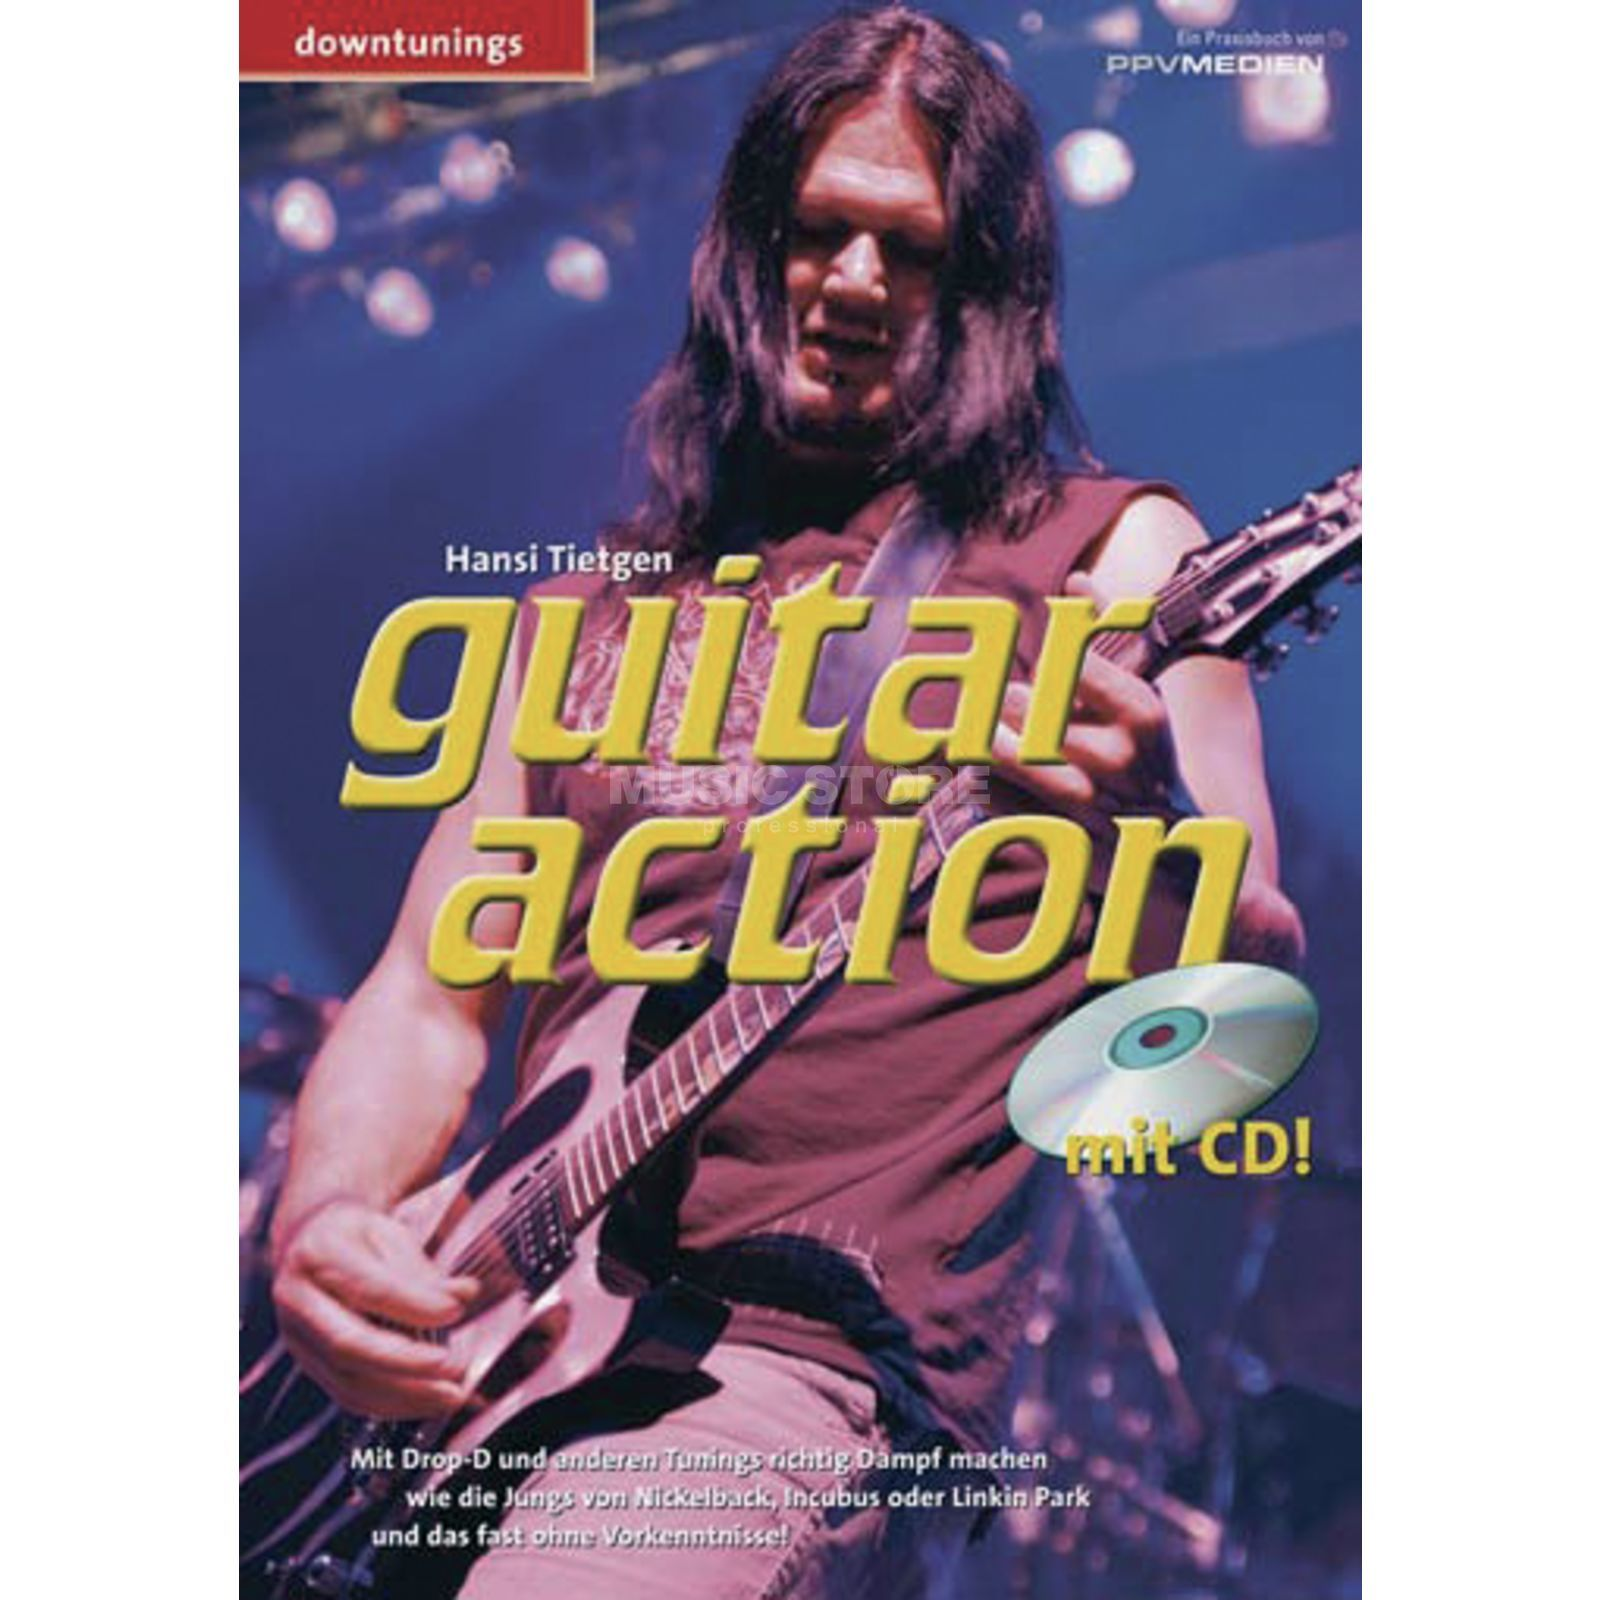 PPV Medien Guitar Action - Downtunings Hansi Tietgen, inkl. CD Produktbillede